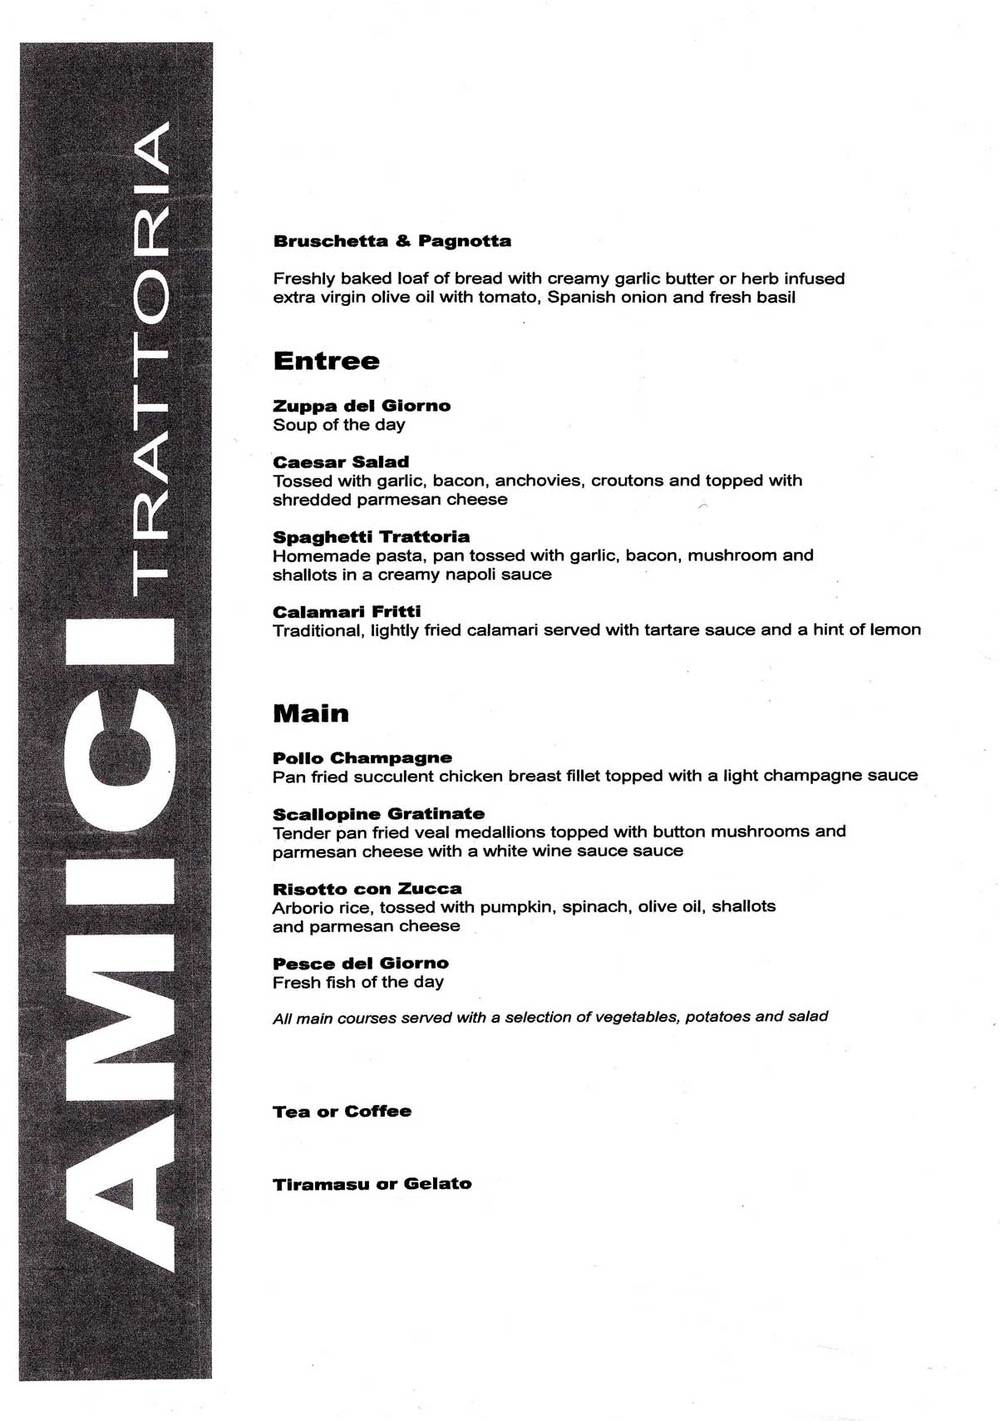 Amici Trattoria menu for the night